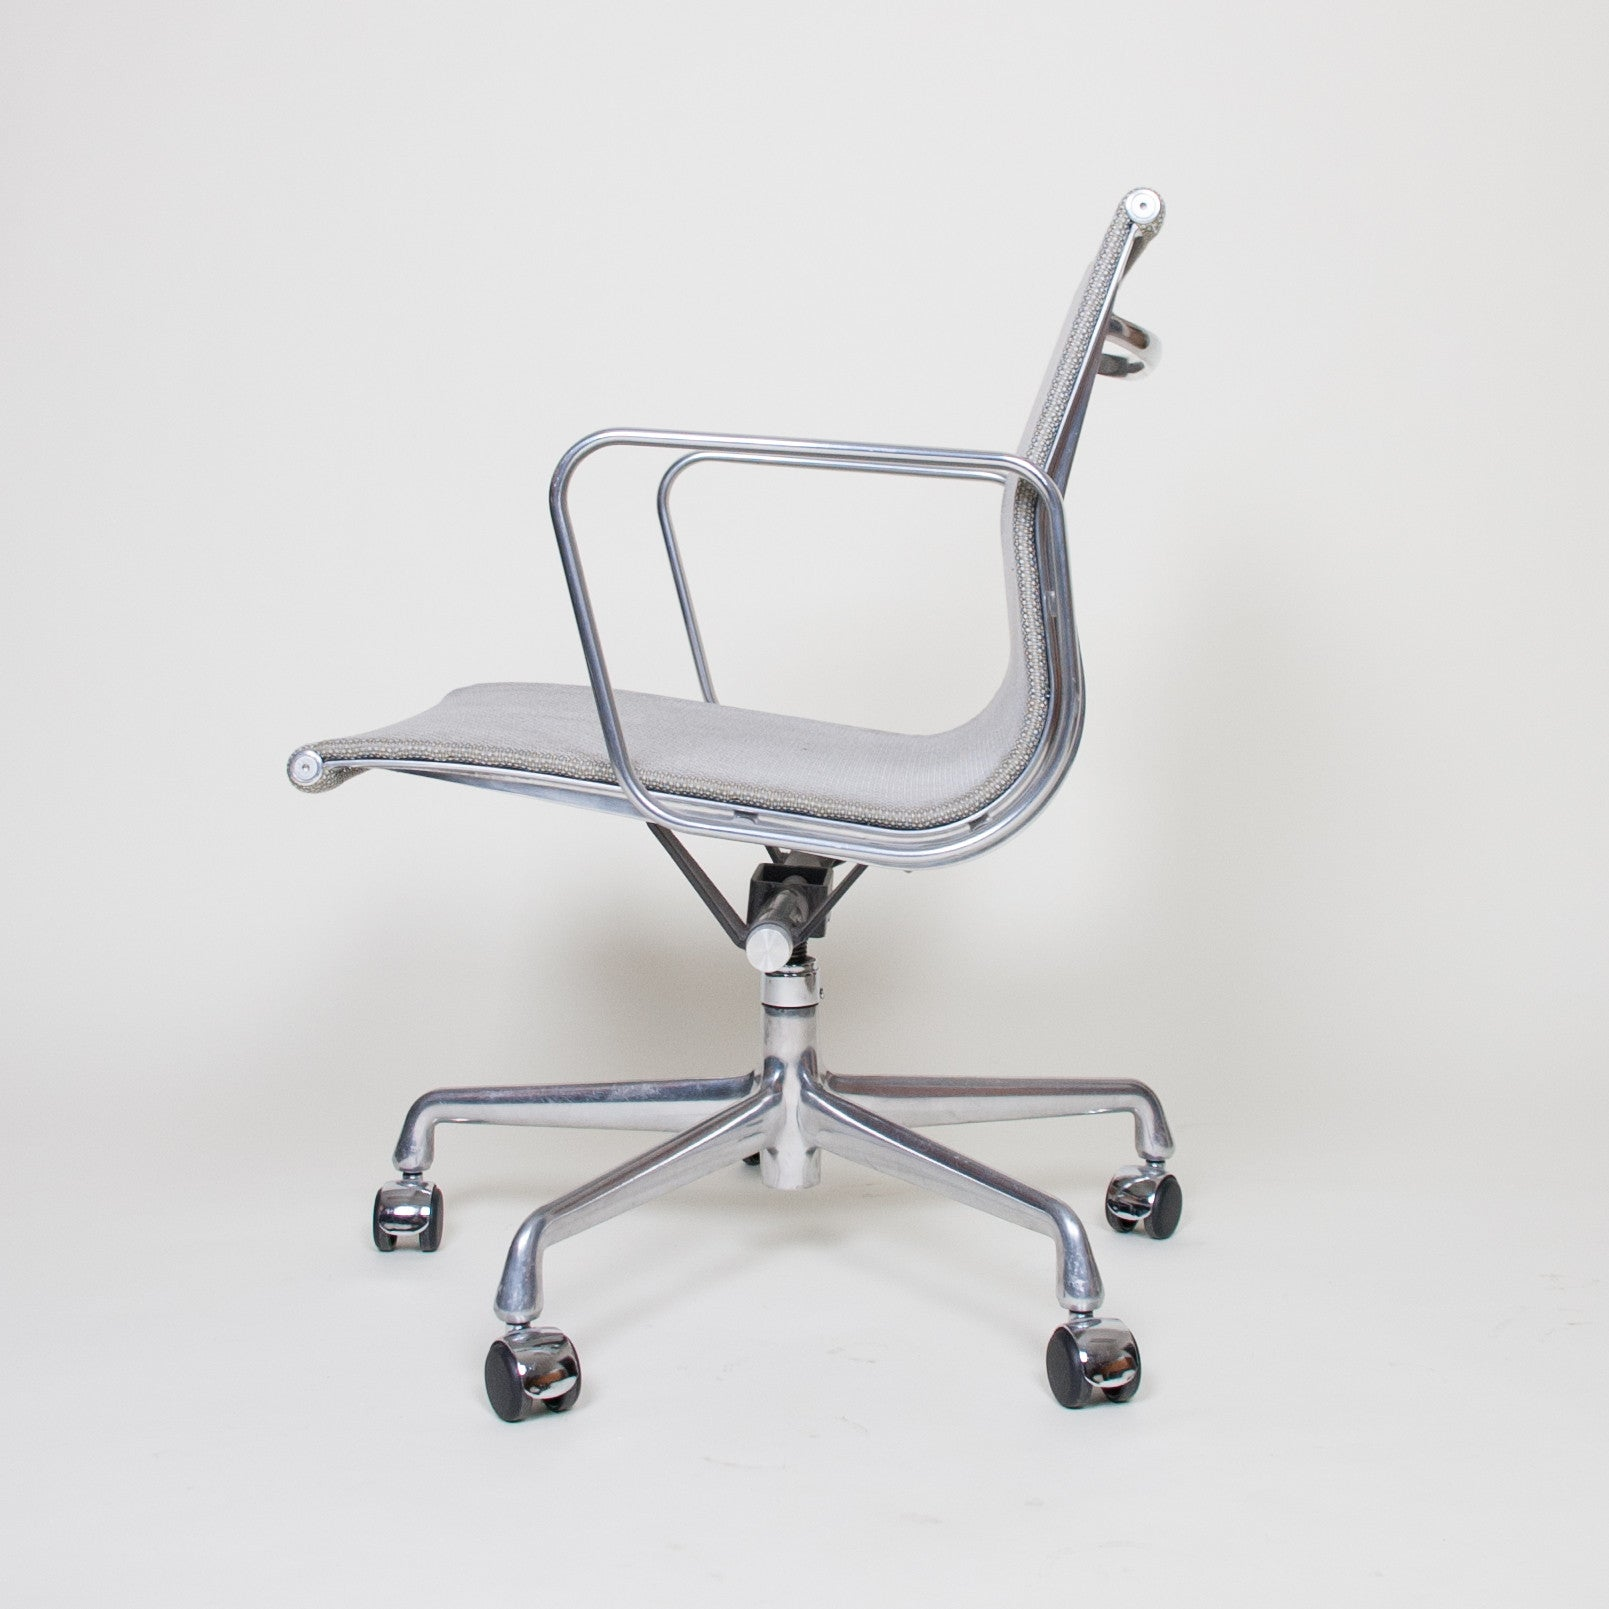 SOLD Eames Herman Miller 2007 Aluminum Group Executive Desk Chairs Mesh